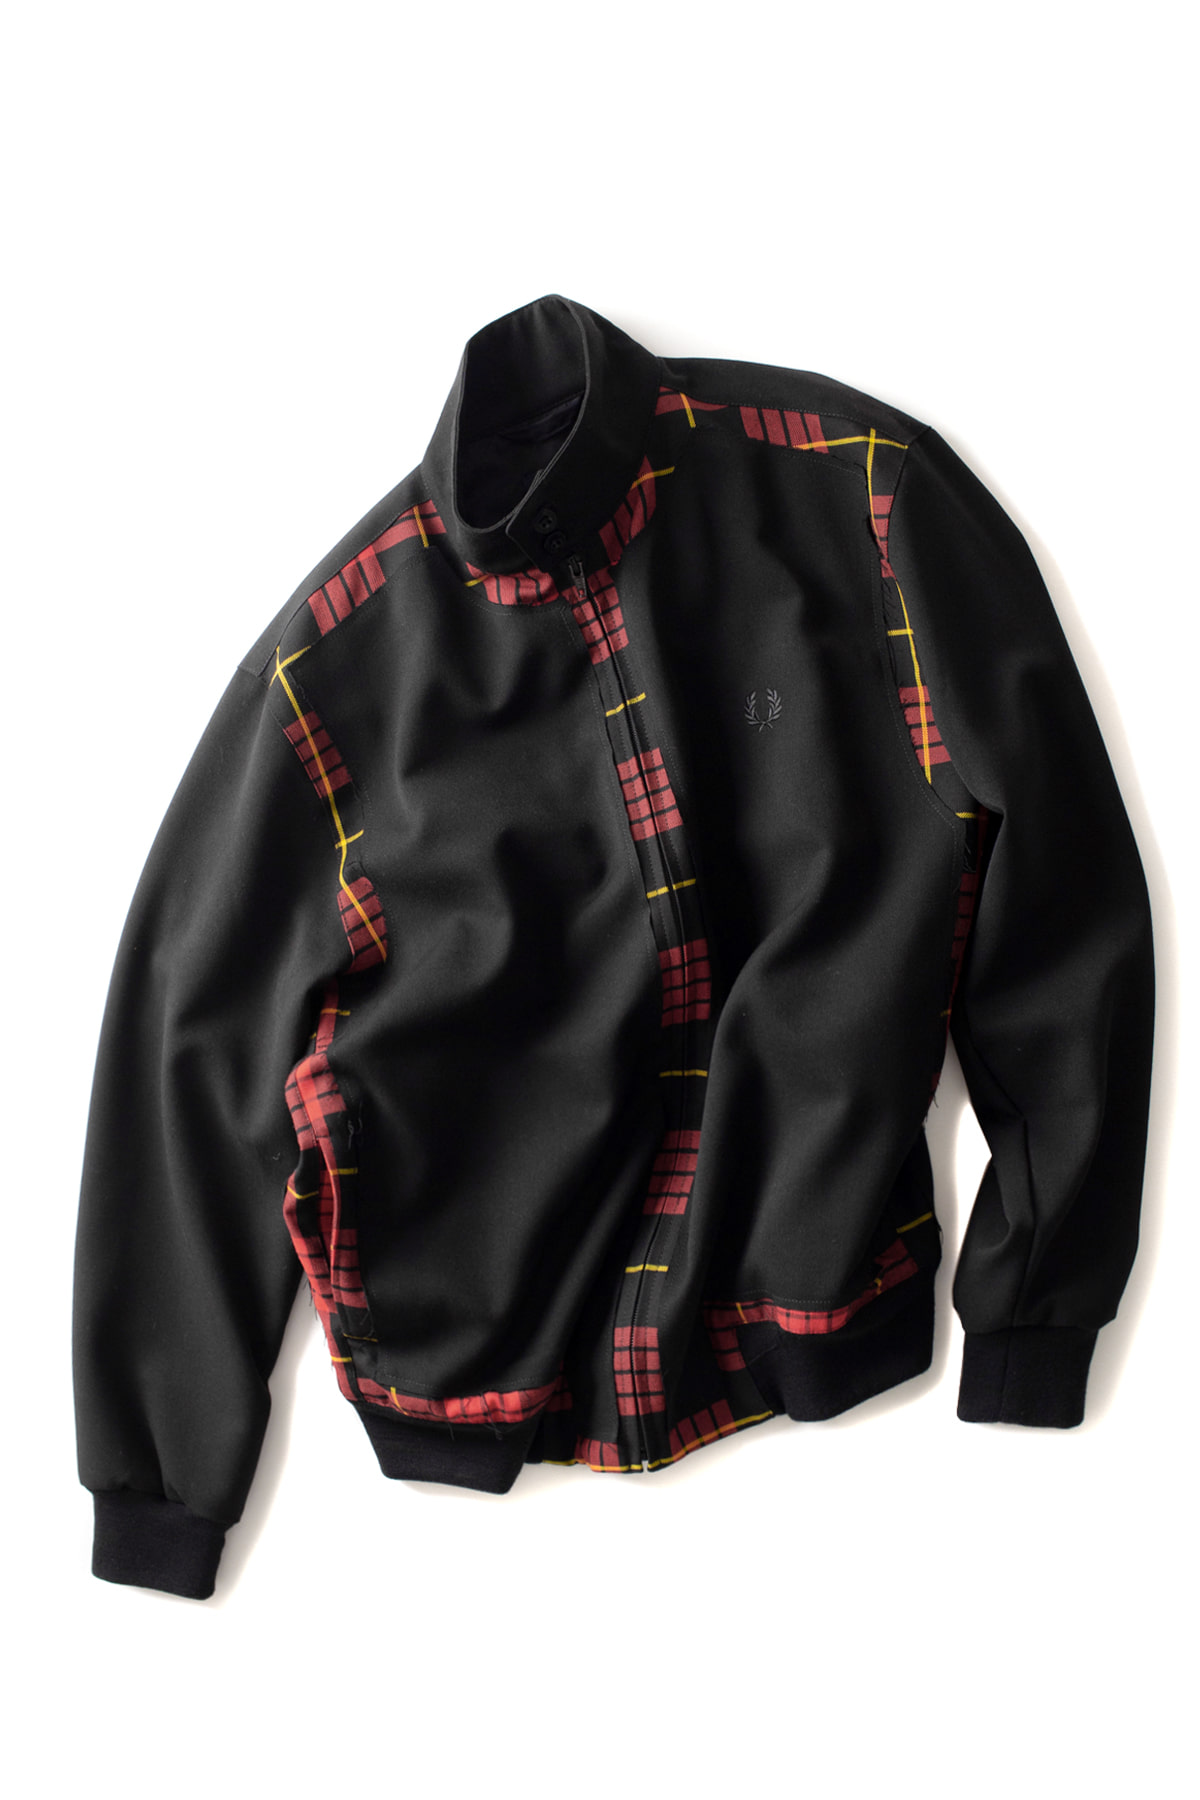 FRED PERRY : Cut Away Harrington Jacket (Black)